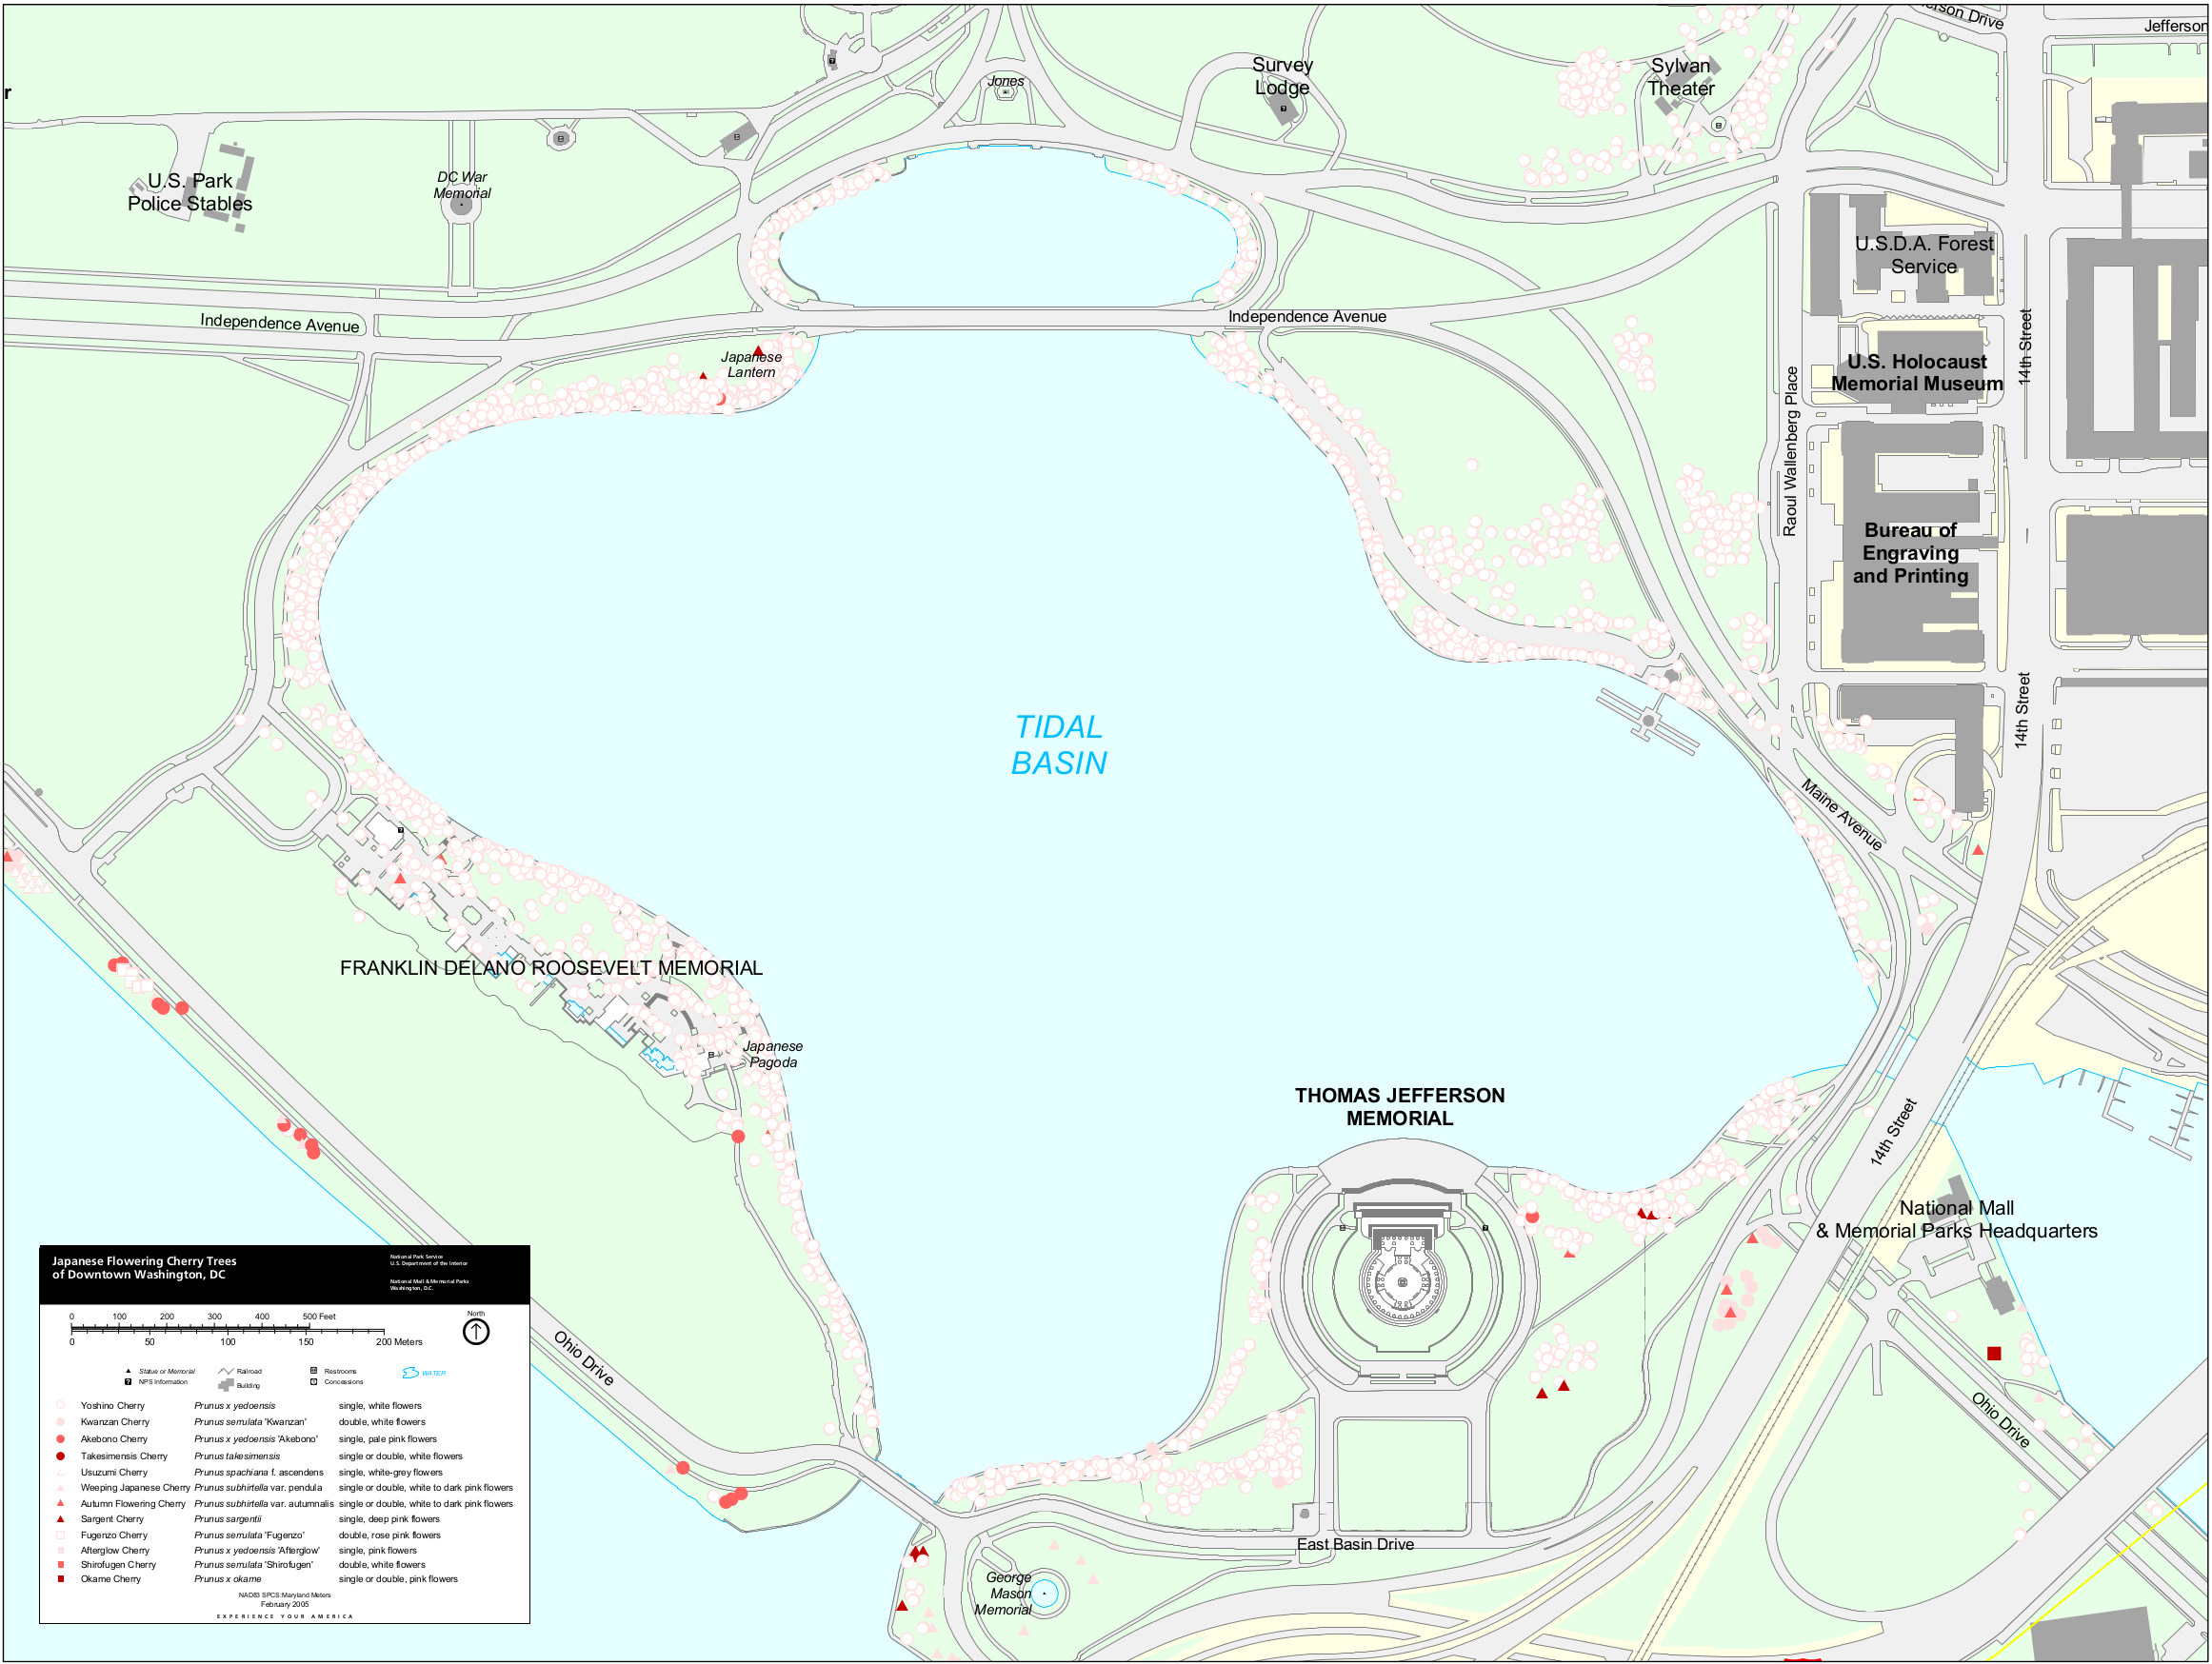 National Mall Maps NPMapscom Just Free Maps Period - Washington dc map of sites